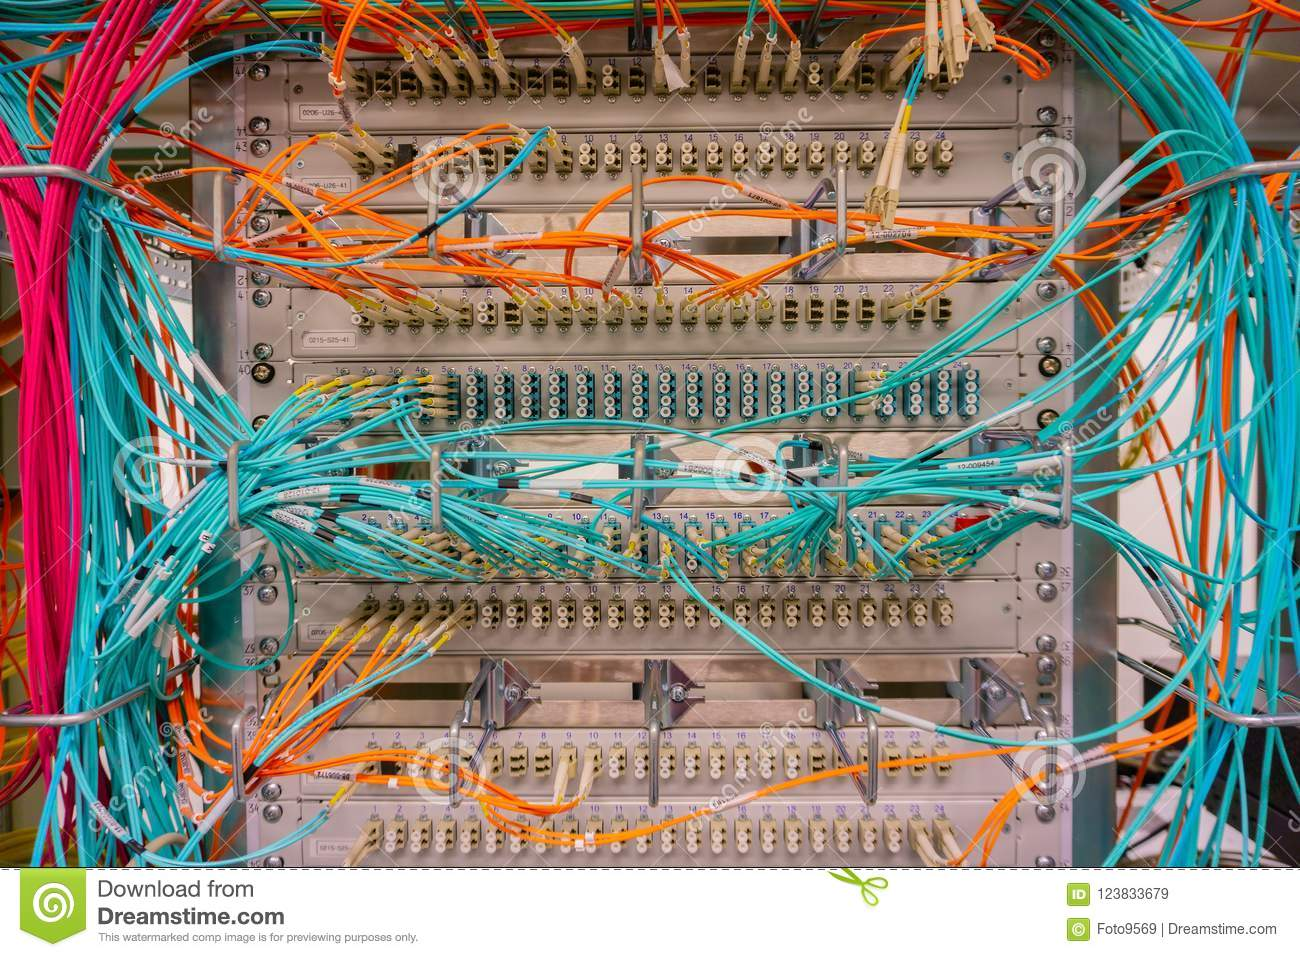 Network Switch Connections For Cable Rj45 And Fiber Patch Panel Wiring Download Optic Stock Image